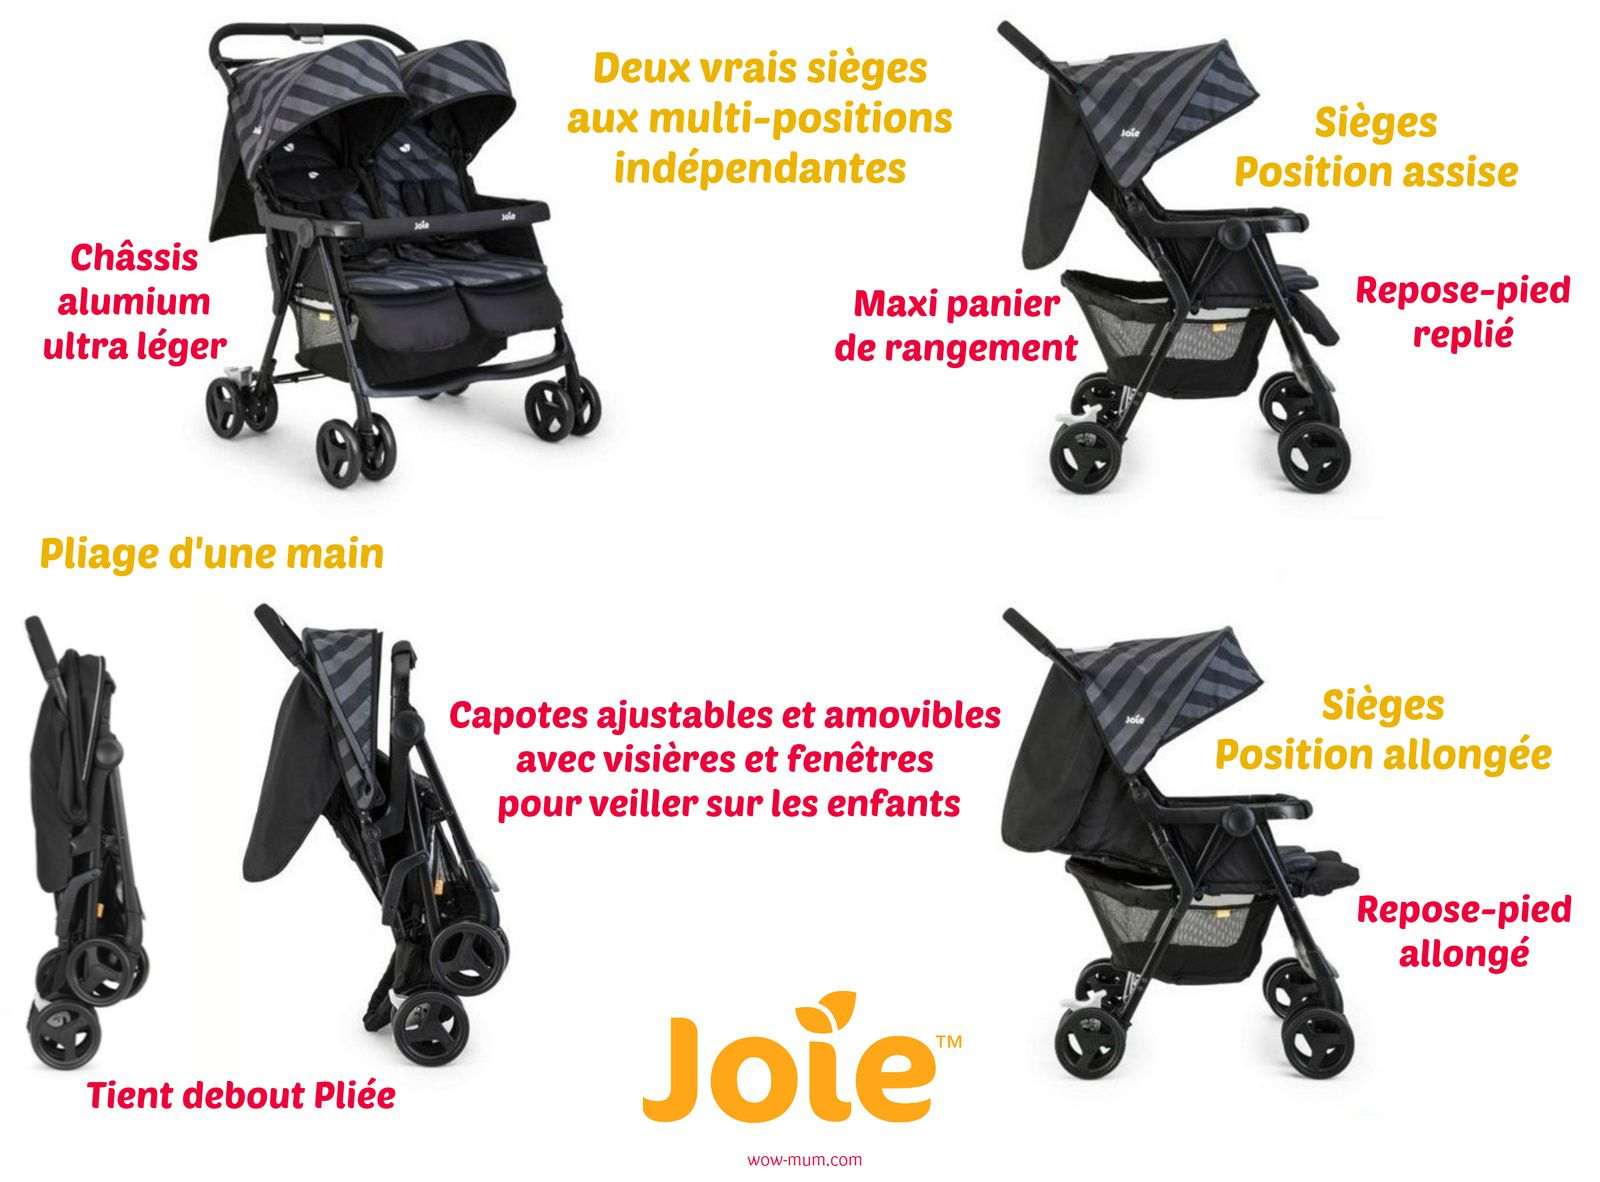 La poussette double Aire Twin Licorice de Joie